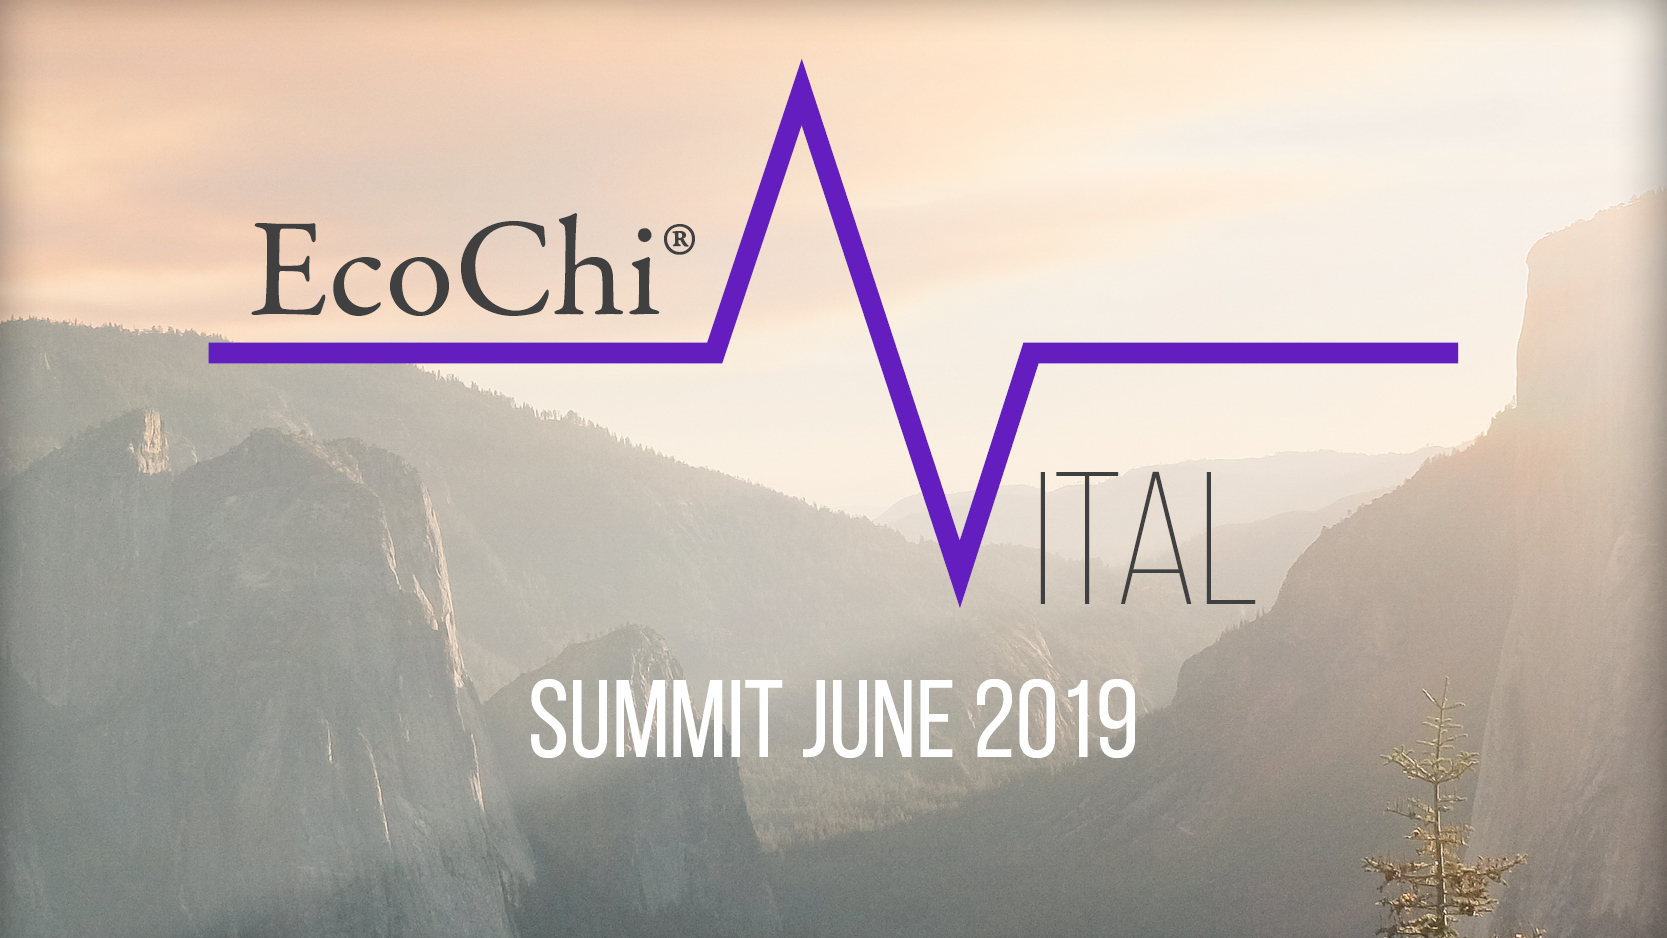 """EcoChi Vital Summit June 2019 """"Cracking the Code"""" - Moderator & Coordinator: Debra Duneier, EcoChi President & Founder, Coordinator: Denise Pezzulo, EcoChi Vice President. Monday June 17th, 2019 9:00am-3:00pm- At Steelcase NYC- Influential thought-leaders from a variety of disciplines participate in a roundtable discussion of current research & studies, ancient knowledge & emerging trends."""